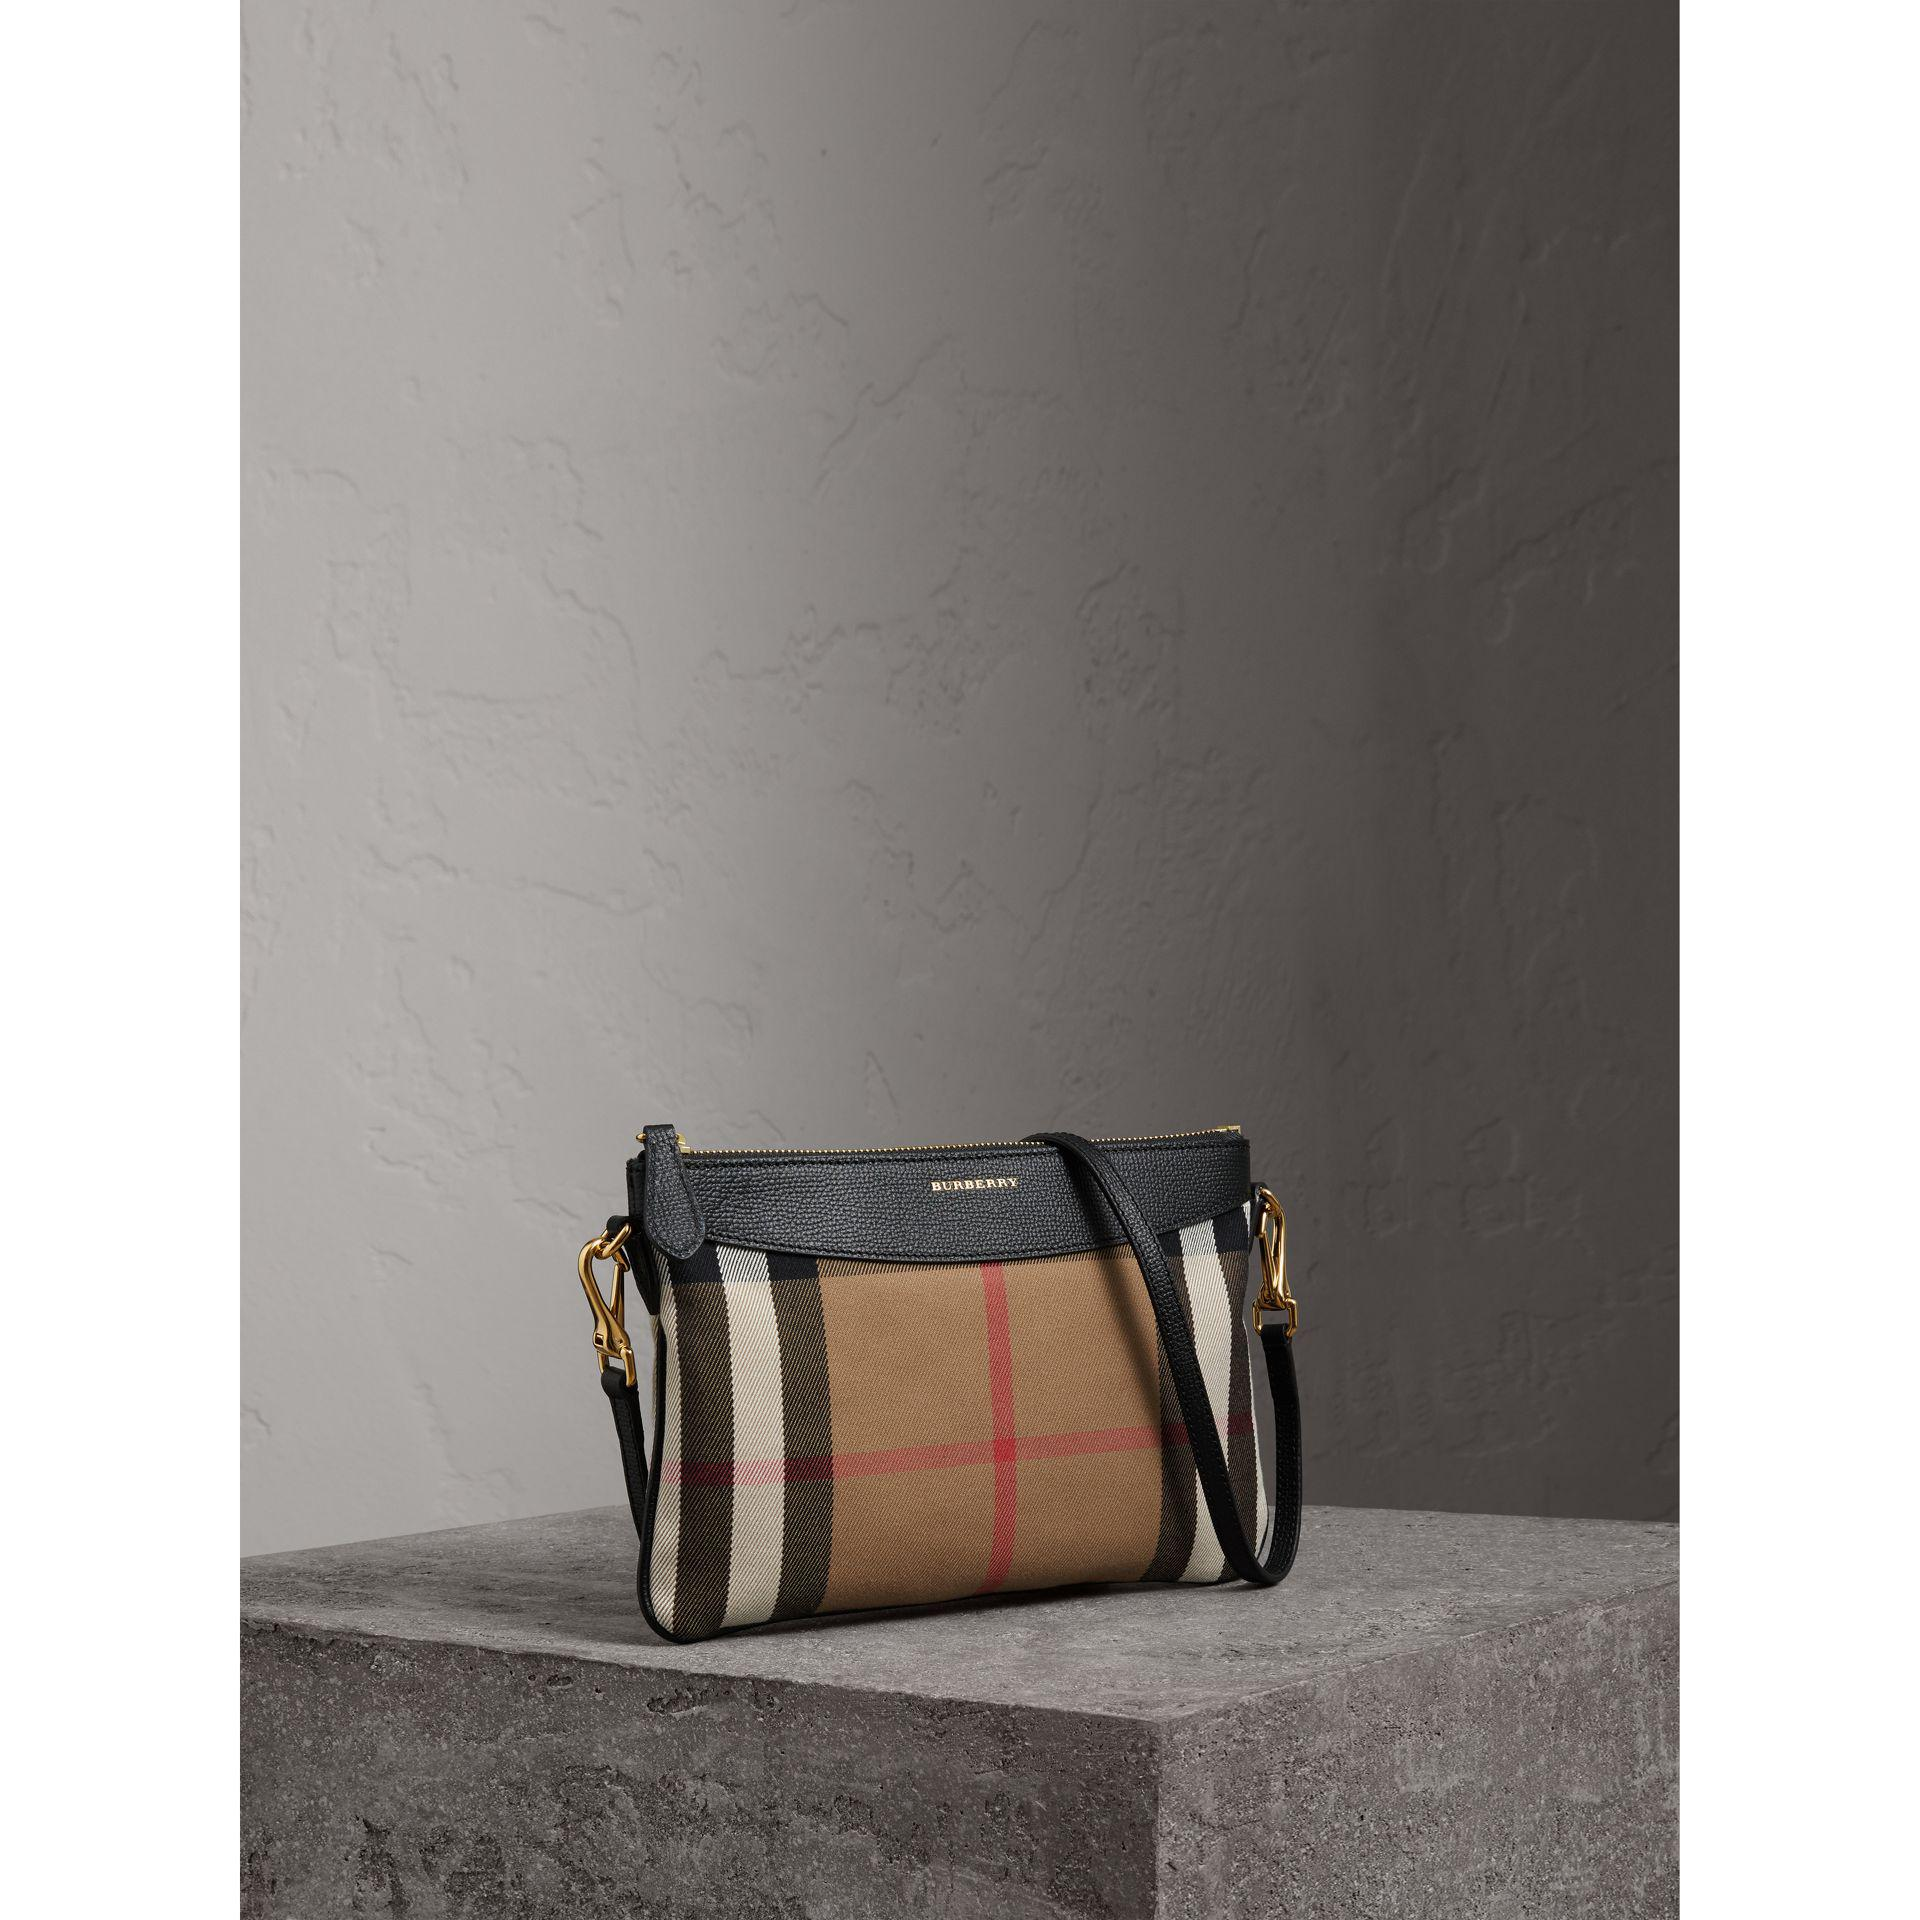 bab7bc17d166 Lyst - Burberry House Check And Leather Clutch Bag in Black